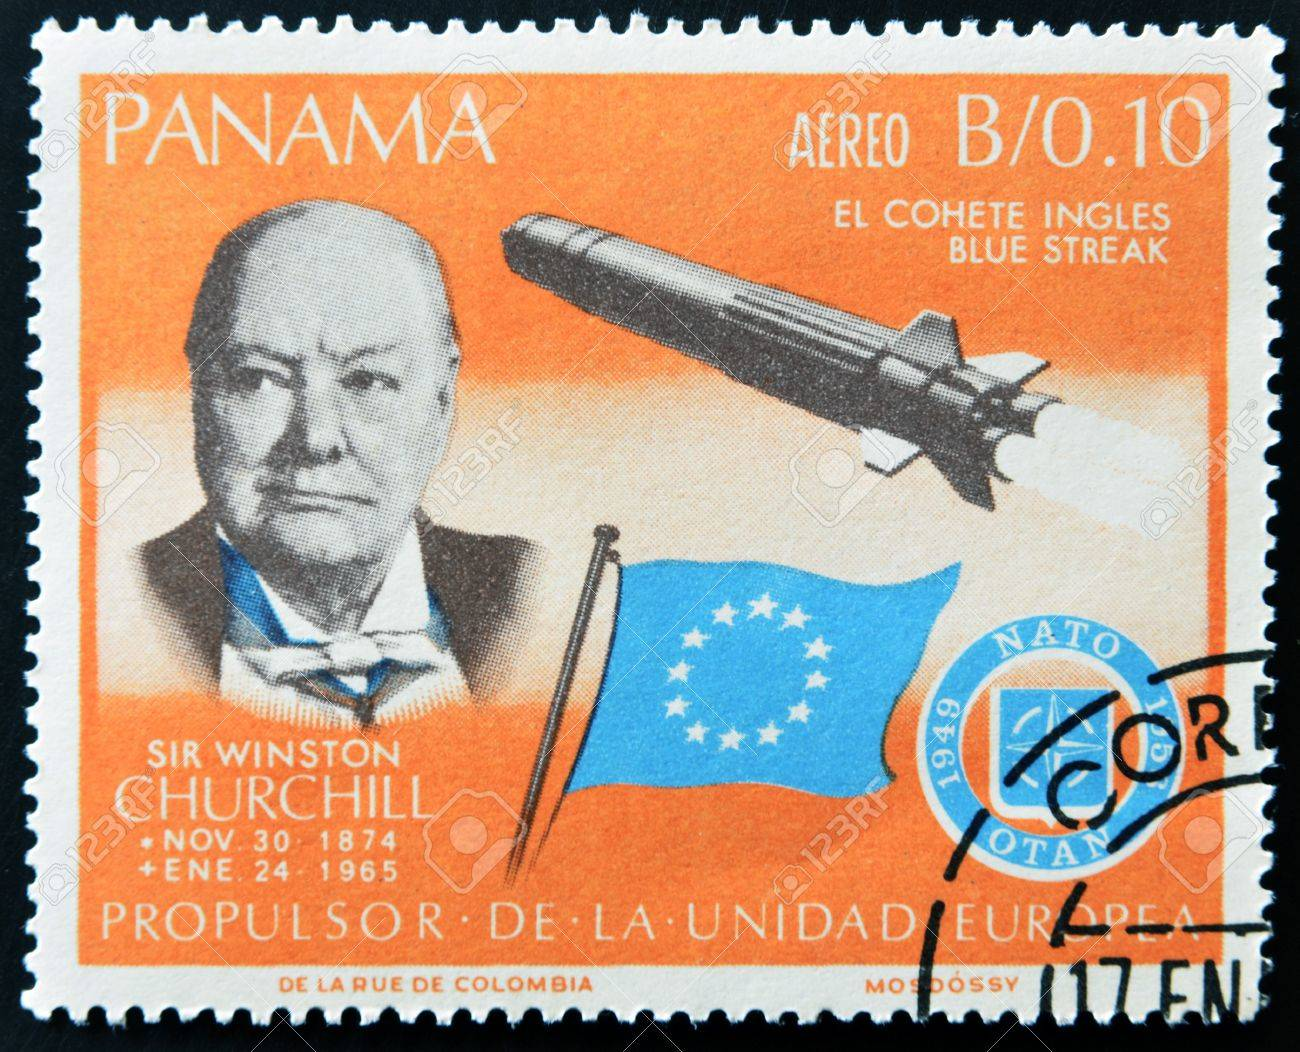 PANAMA - CIRCA 1966: A stamp printed by Panama, shows Sir Winston Churchill and rocket Blue streak, circa 1966  Stock Photo - 11805097